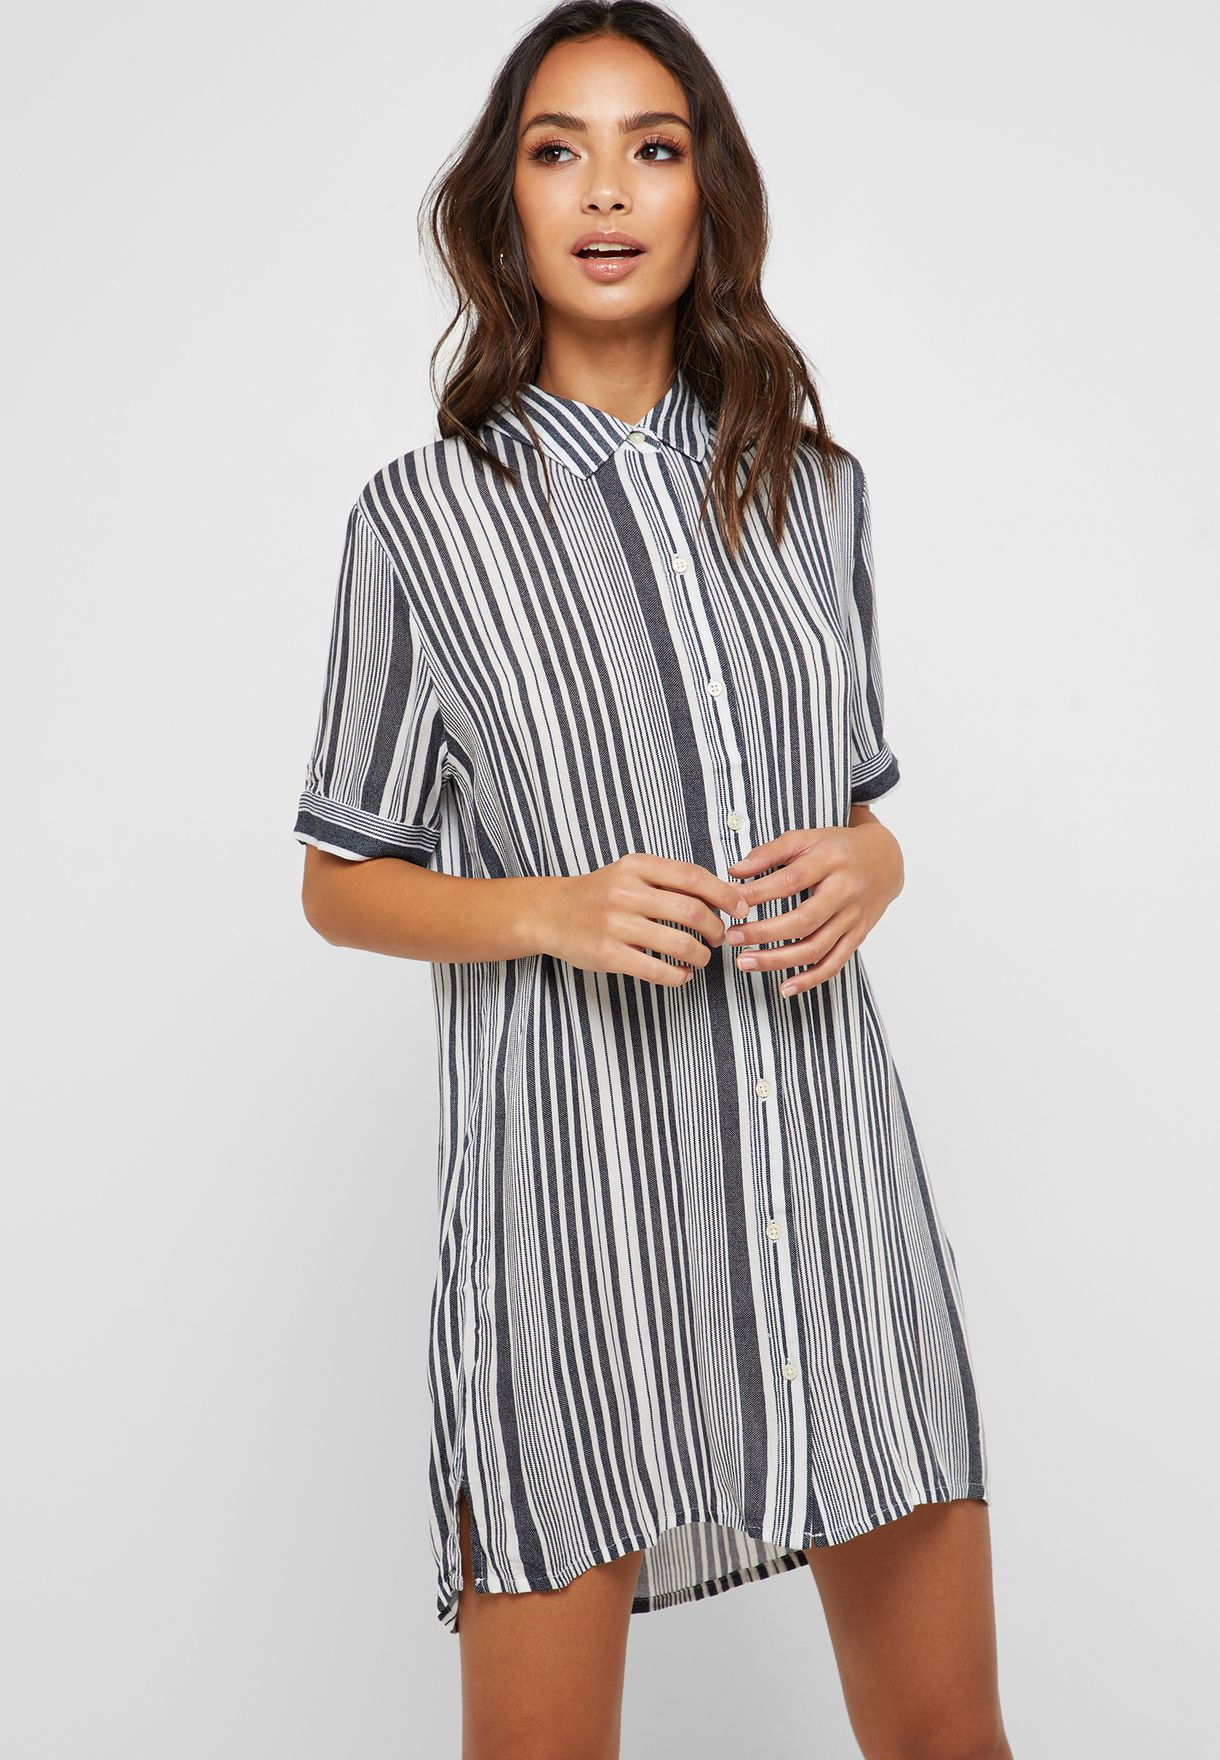 eb4224851797 Shop Forever 21 prints Striped Shirt Dress 305943 for Women in Qatar ...